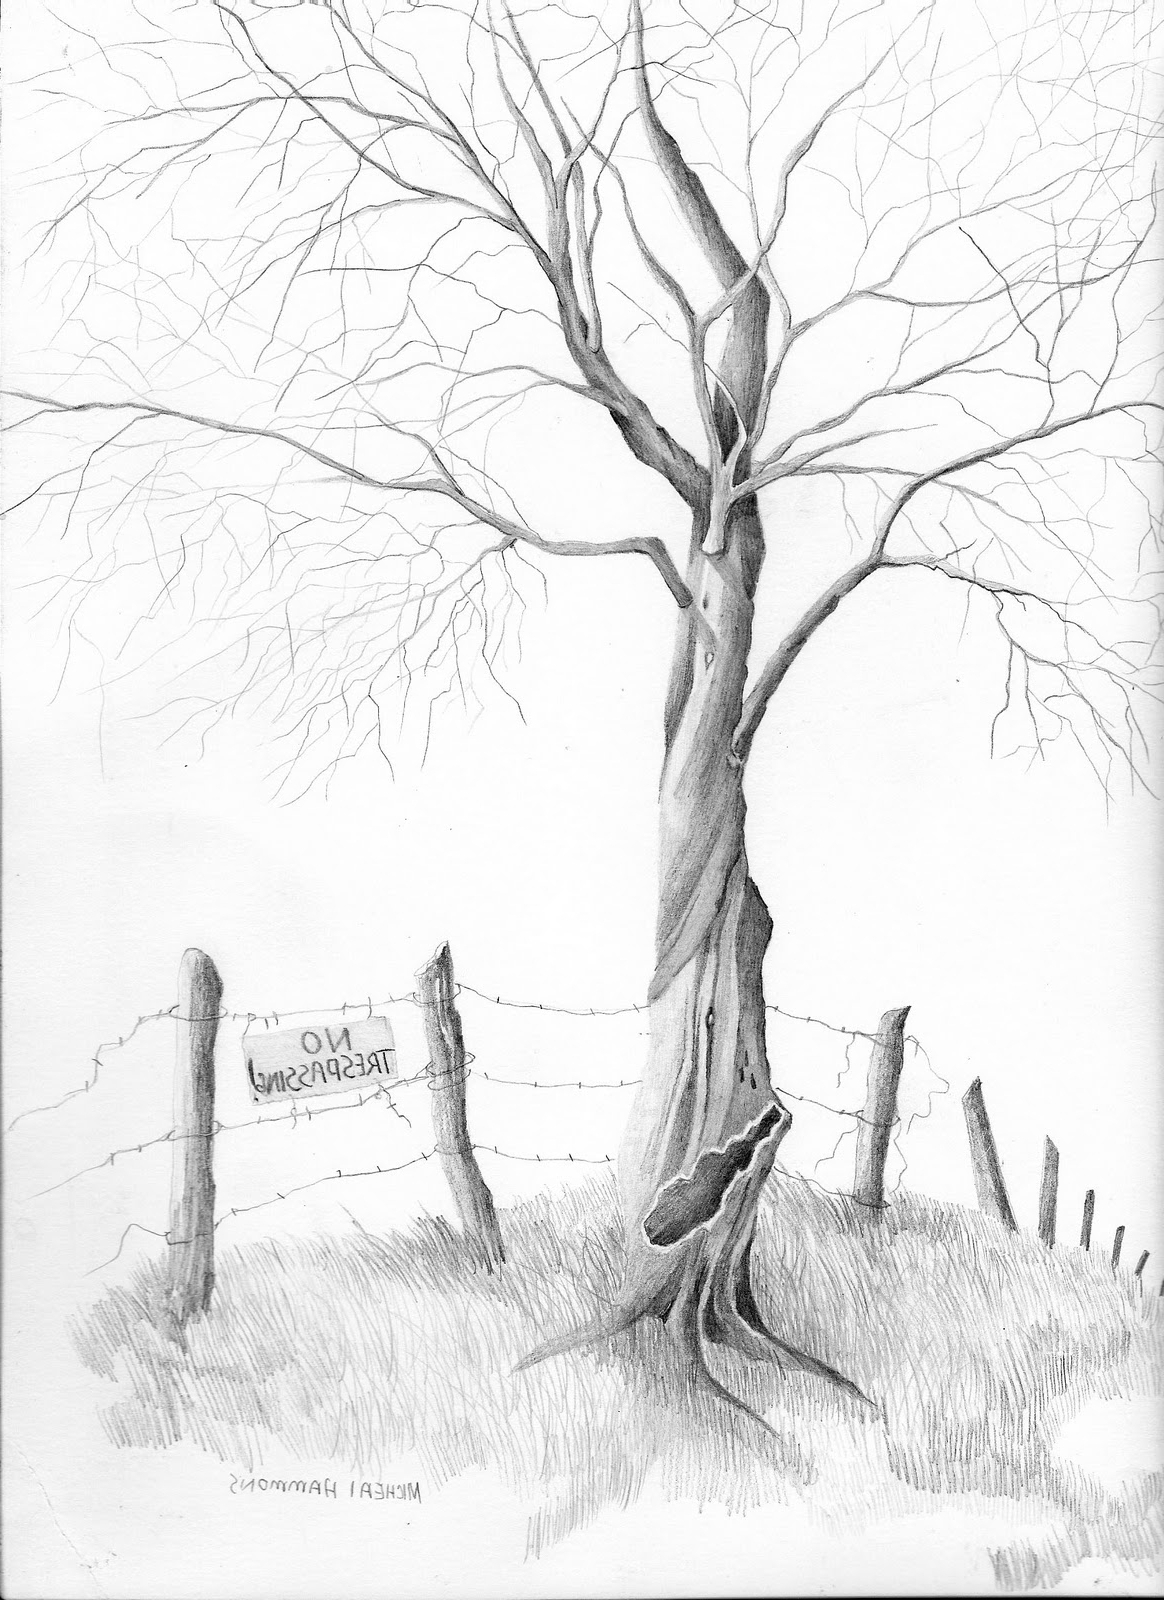 how to draw realistic pine trees pine trees drawing at getdrawings free download realistic how pine to trees draw